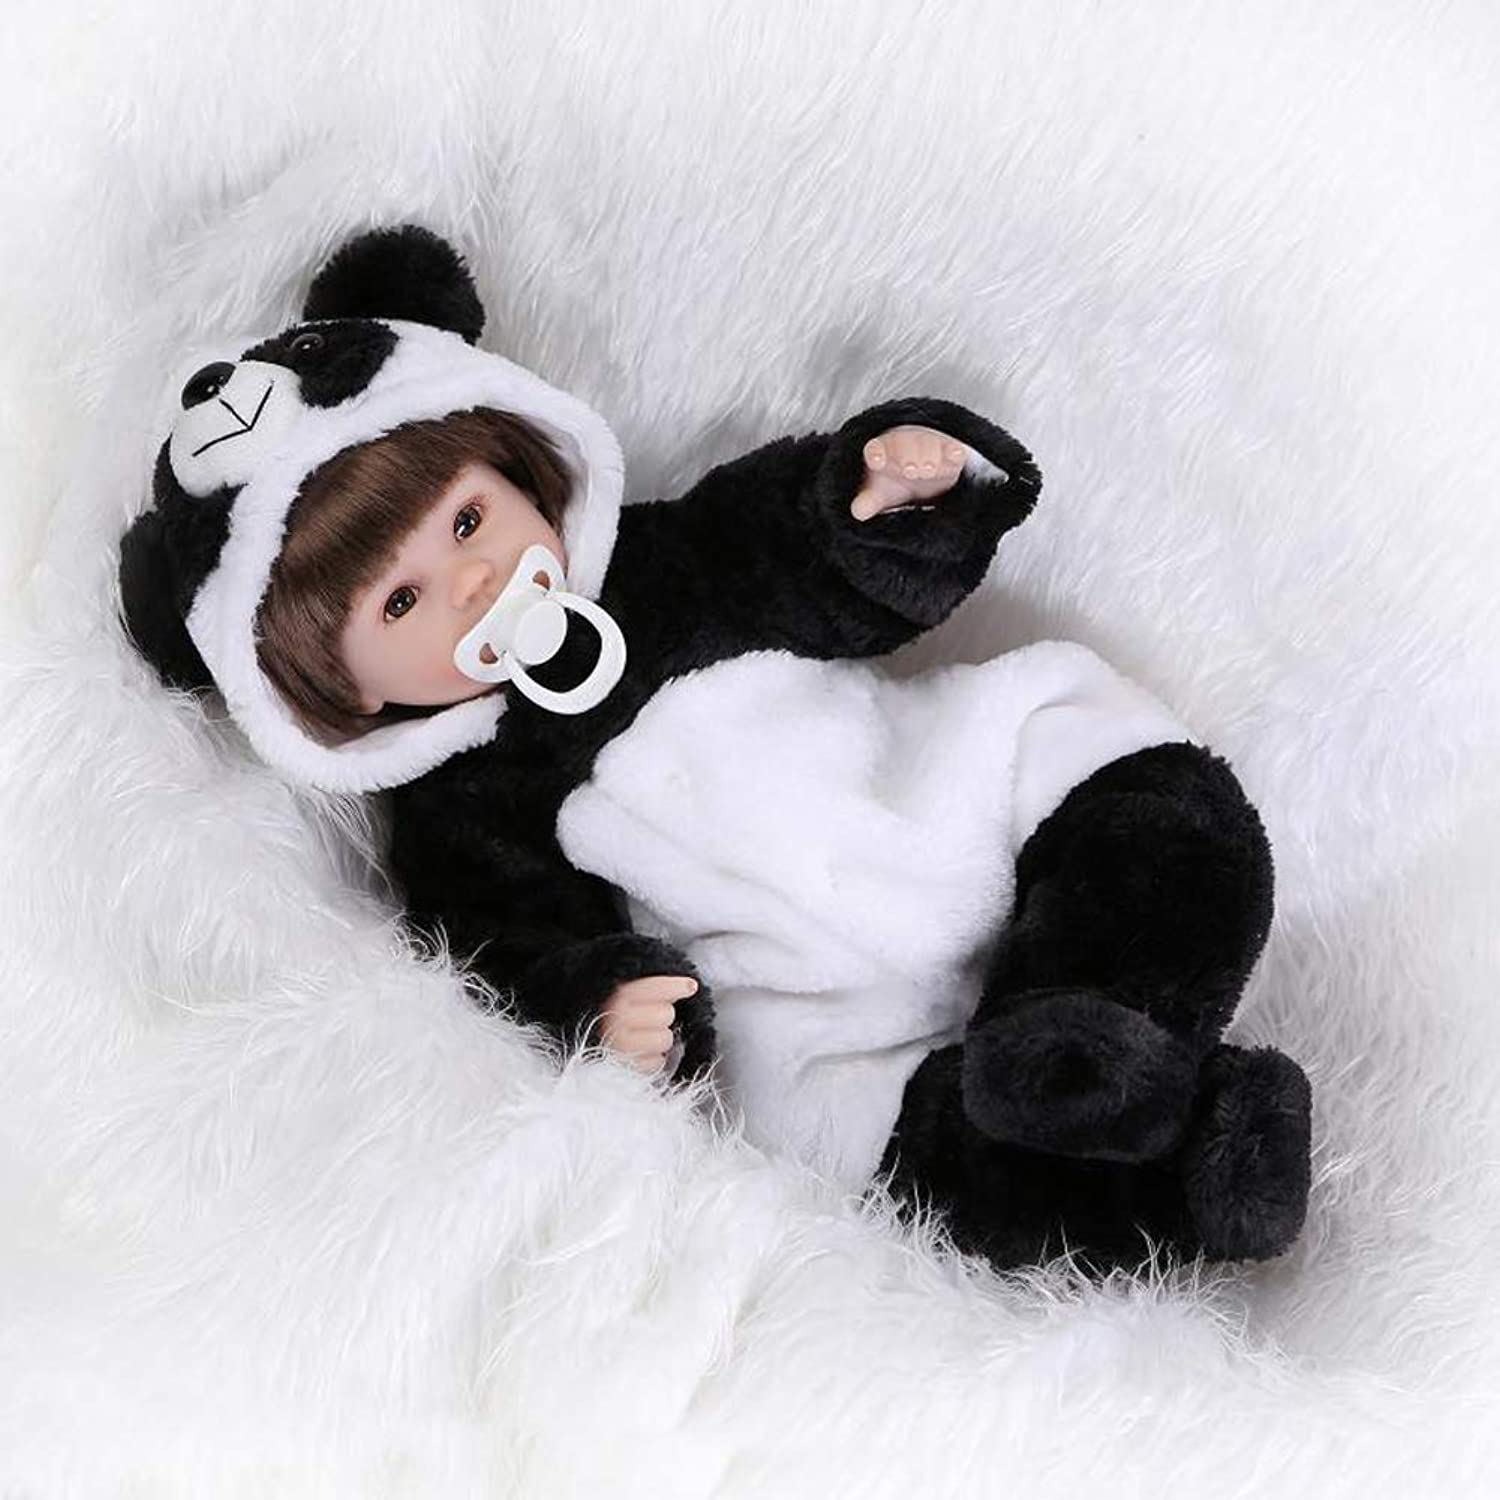 Homesave Baby Puppen 17 Zoll 42Cm Simulation Silikon Mädchen Cute Panda Adult Collection B07GS1Z3ND Spielen Sie Leidenschaft, spielen Sie die Ernte, spielen Sie die Welt  | Zürich